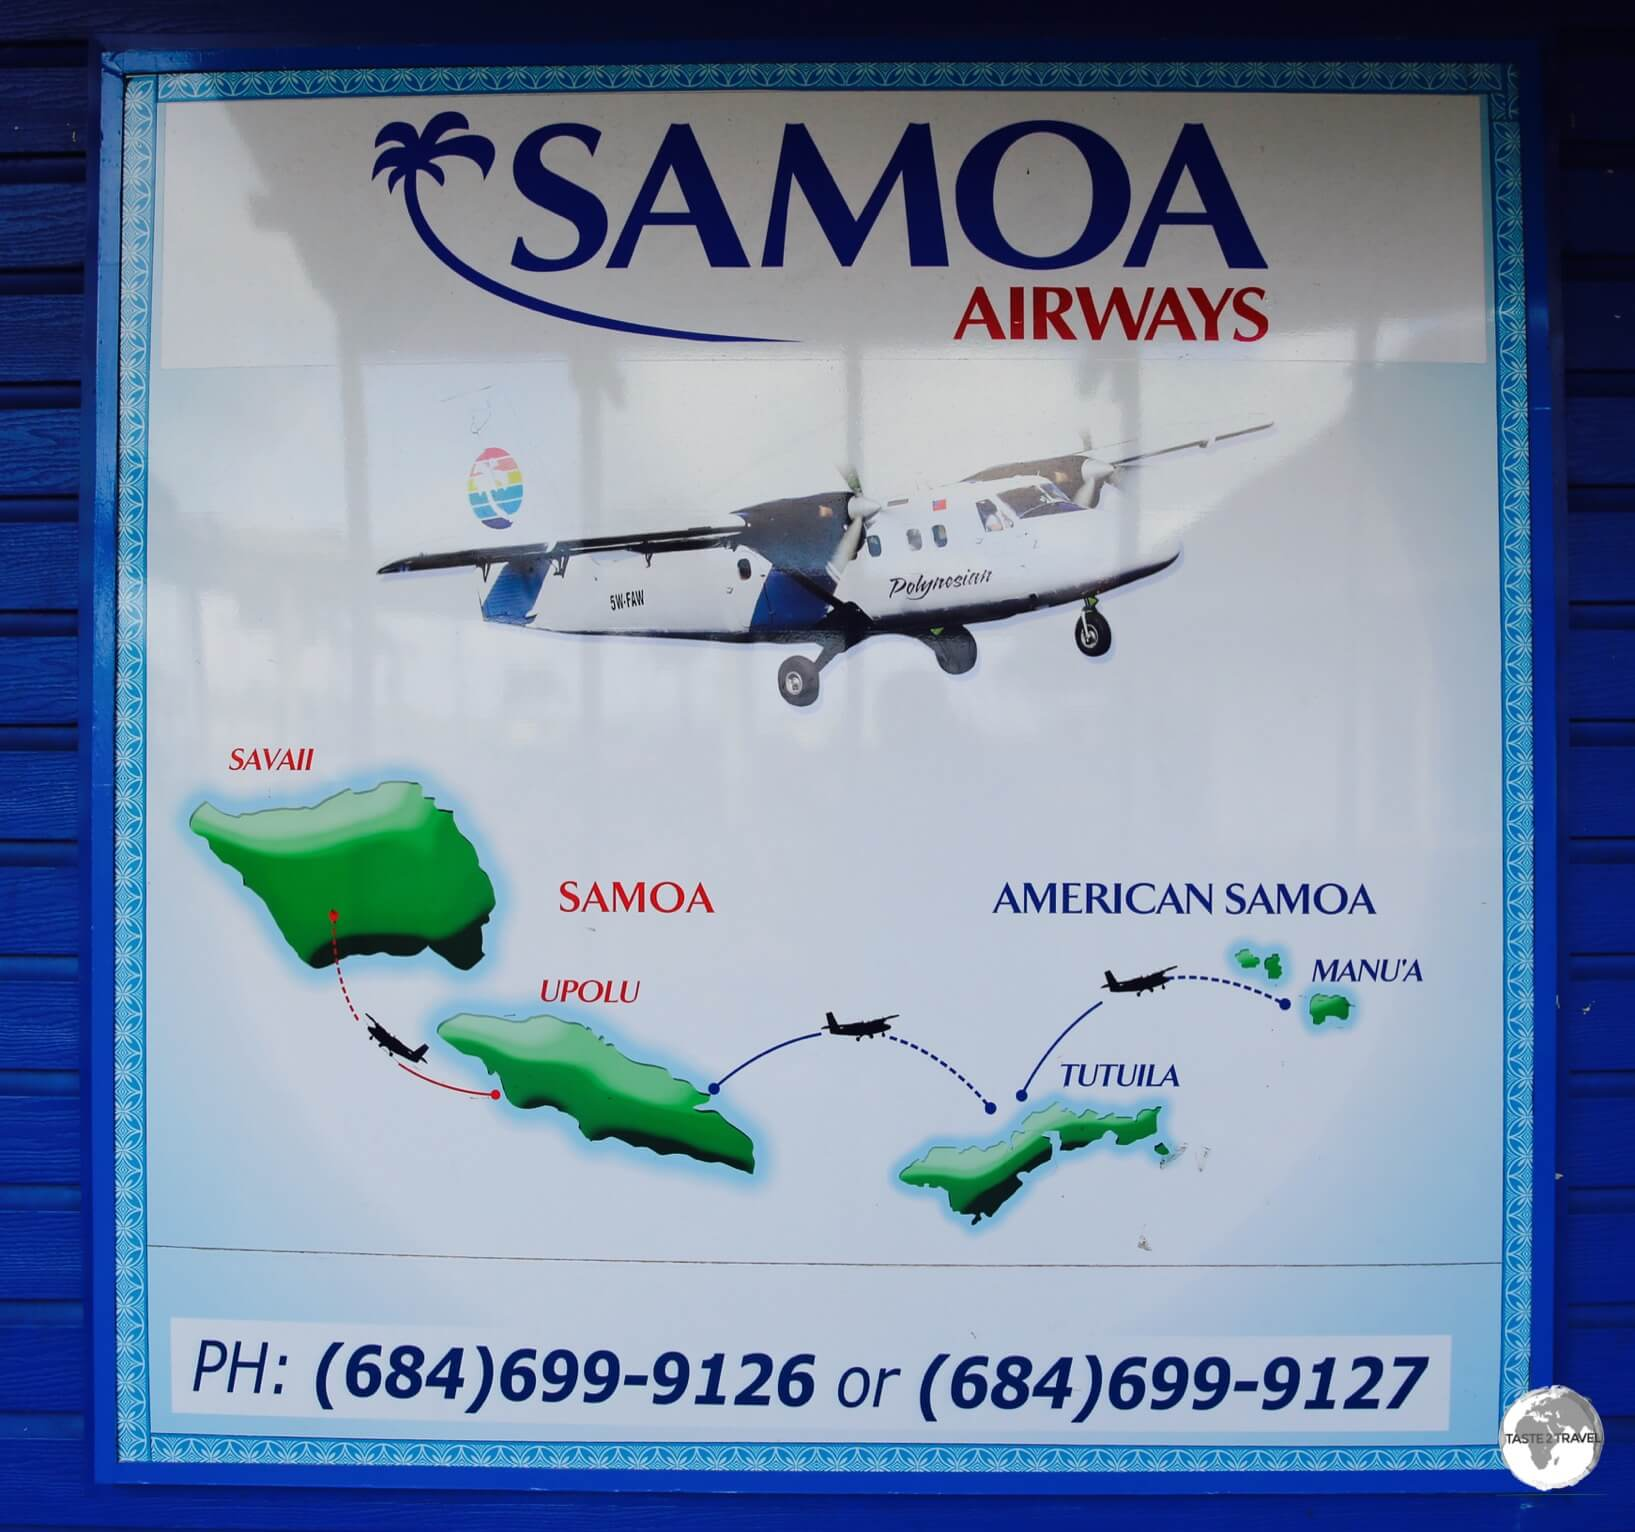 Samoa Airways 'route map' at Pago Pago airport.